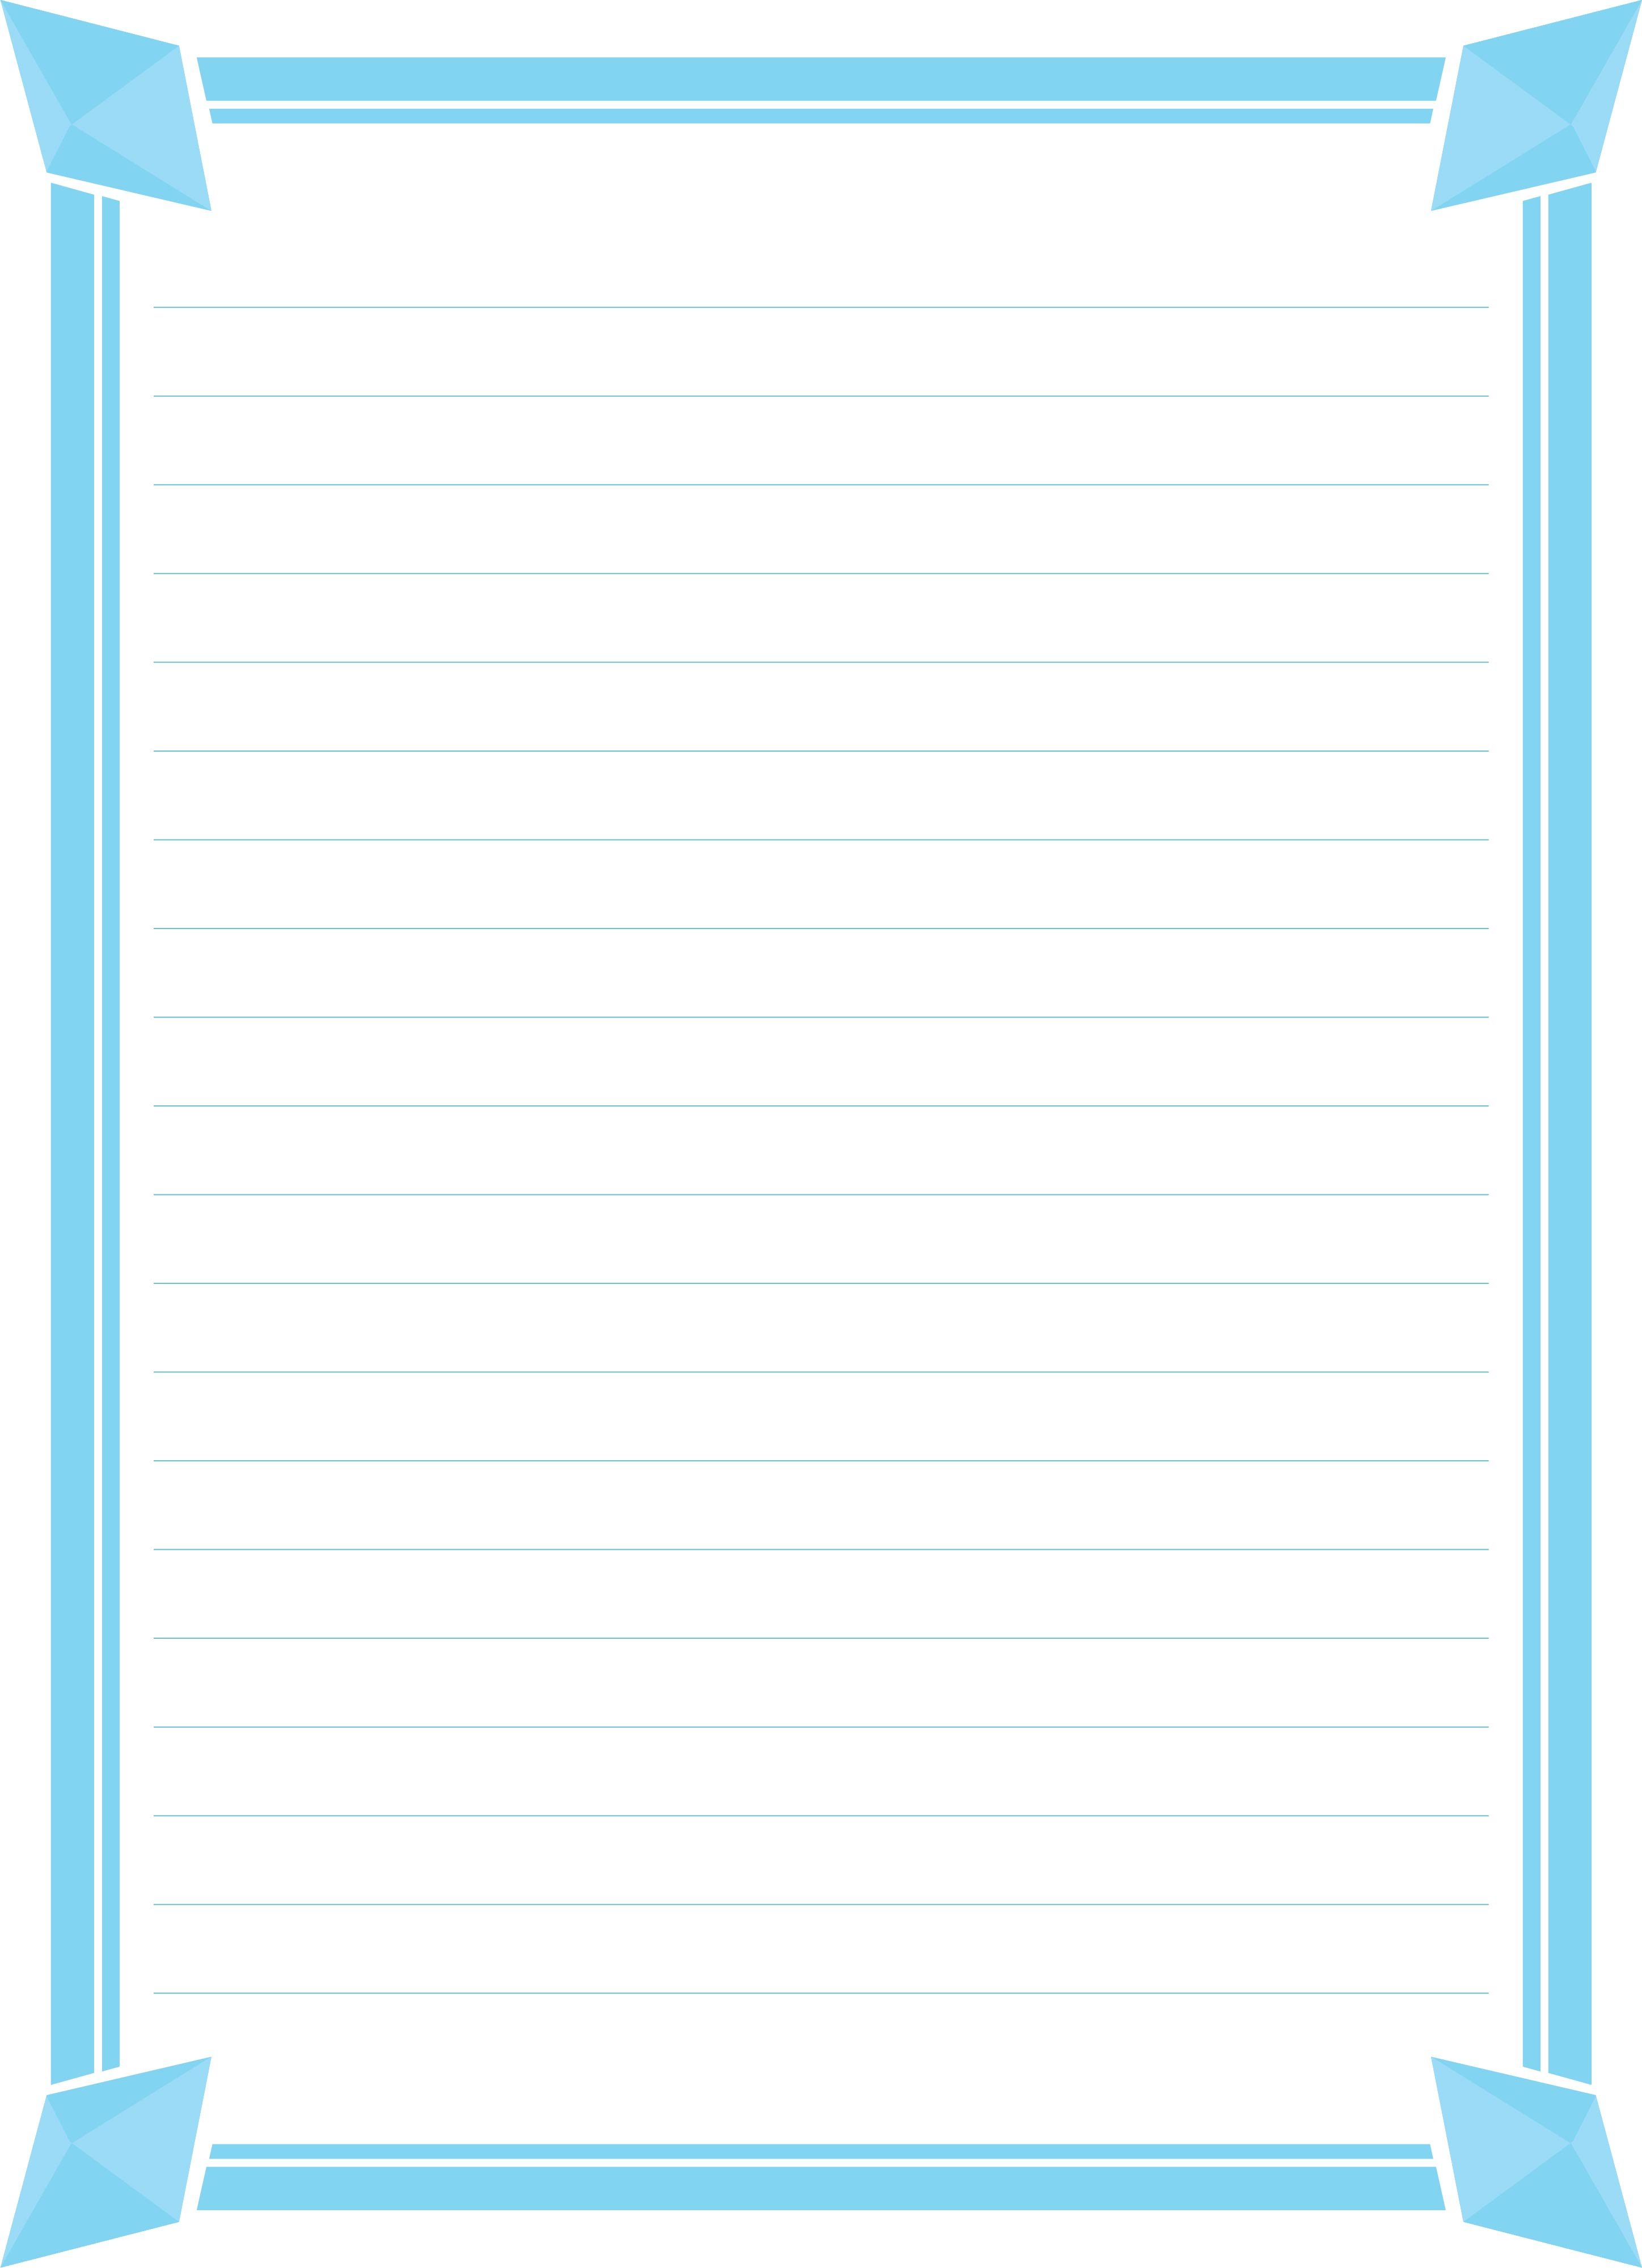 Free Printable Lined Paper with Borders